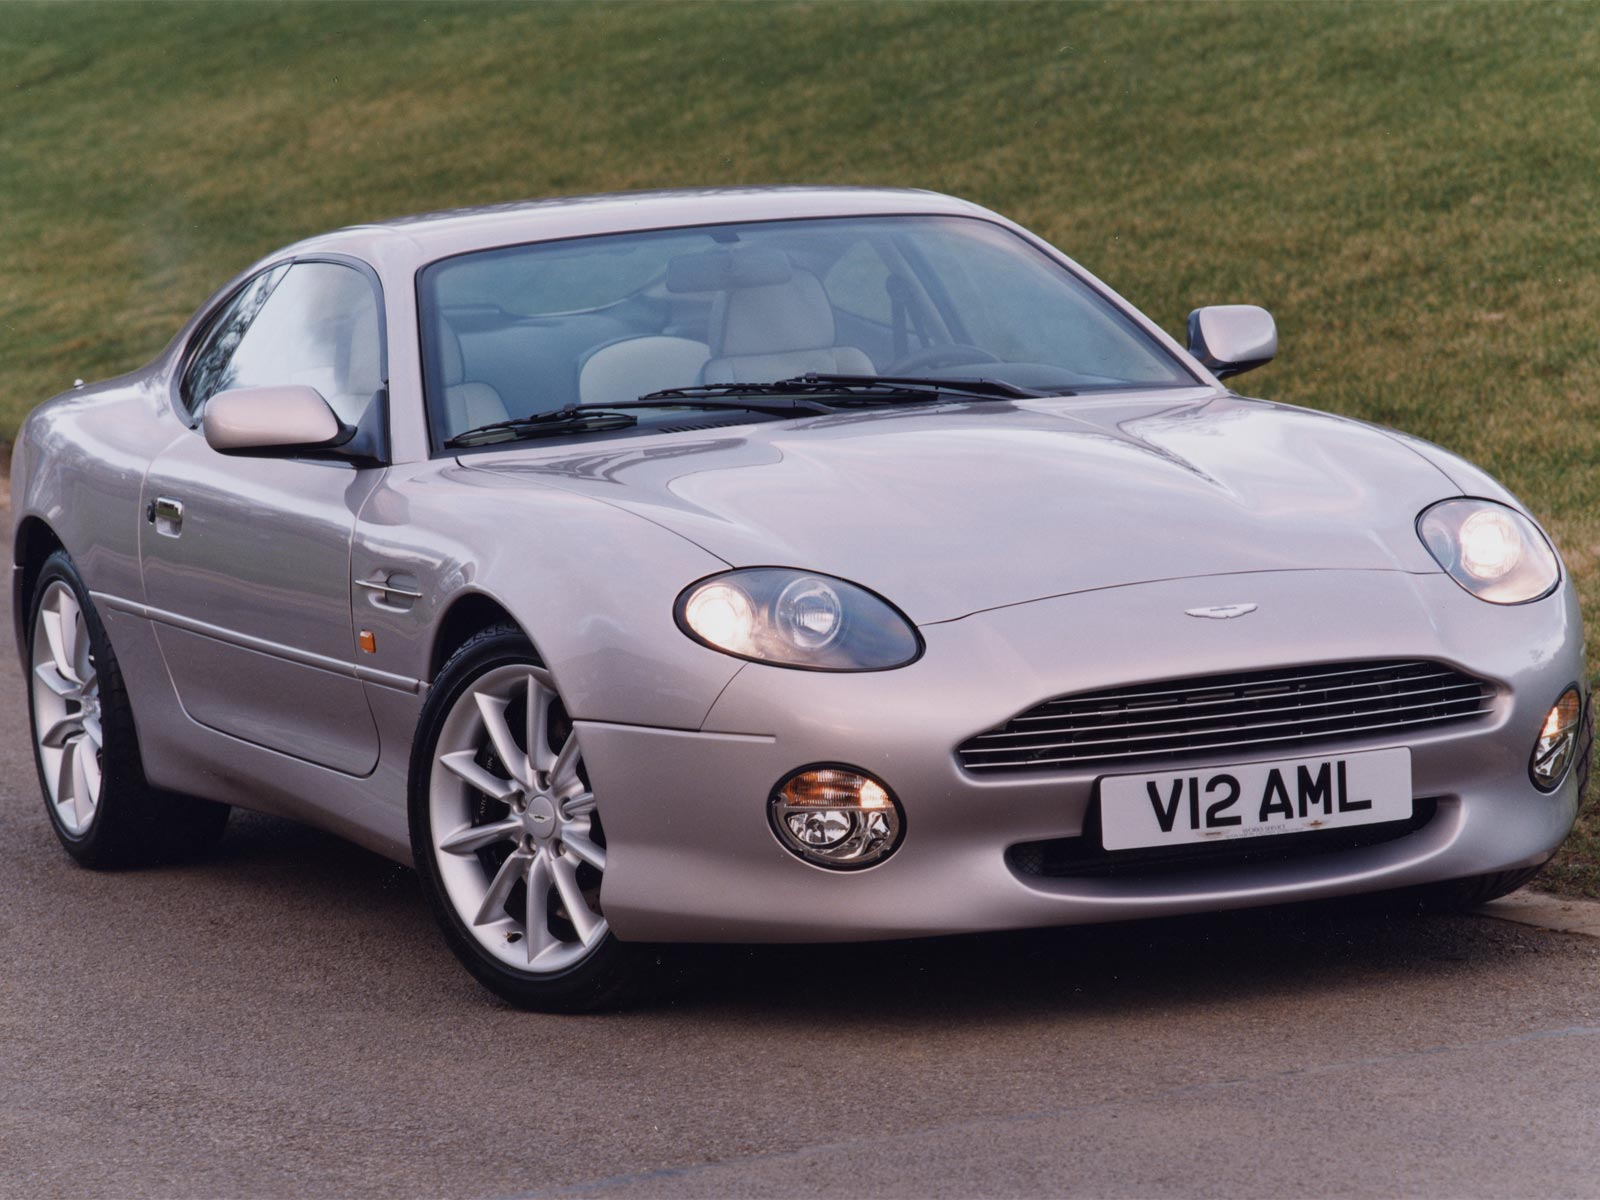 1994 Aston Martin DB7 photo - 1